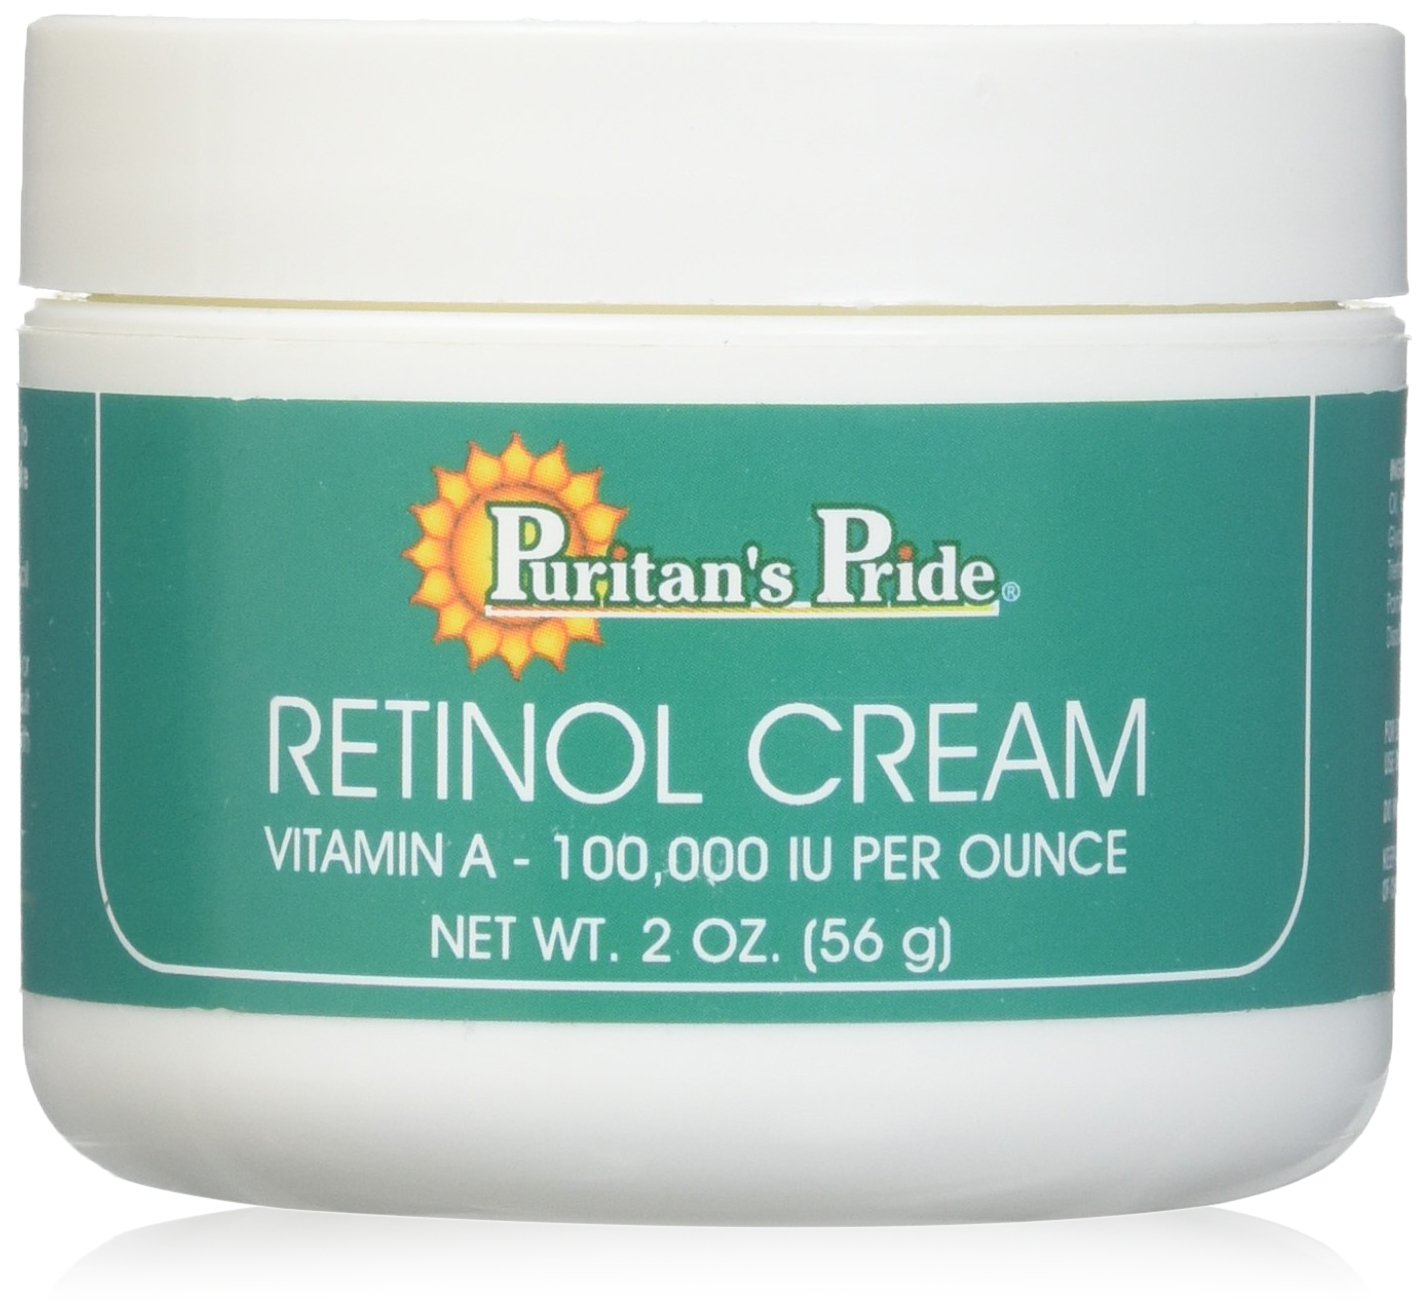 Retinol Cream 2 oz - Vitamin A 100,000 IU per oz (3 Jars) (3 Jars) by Puritan's Pride